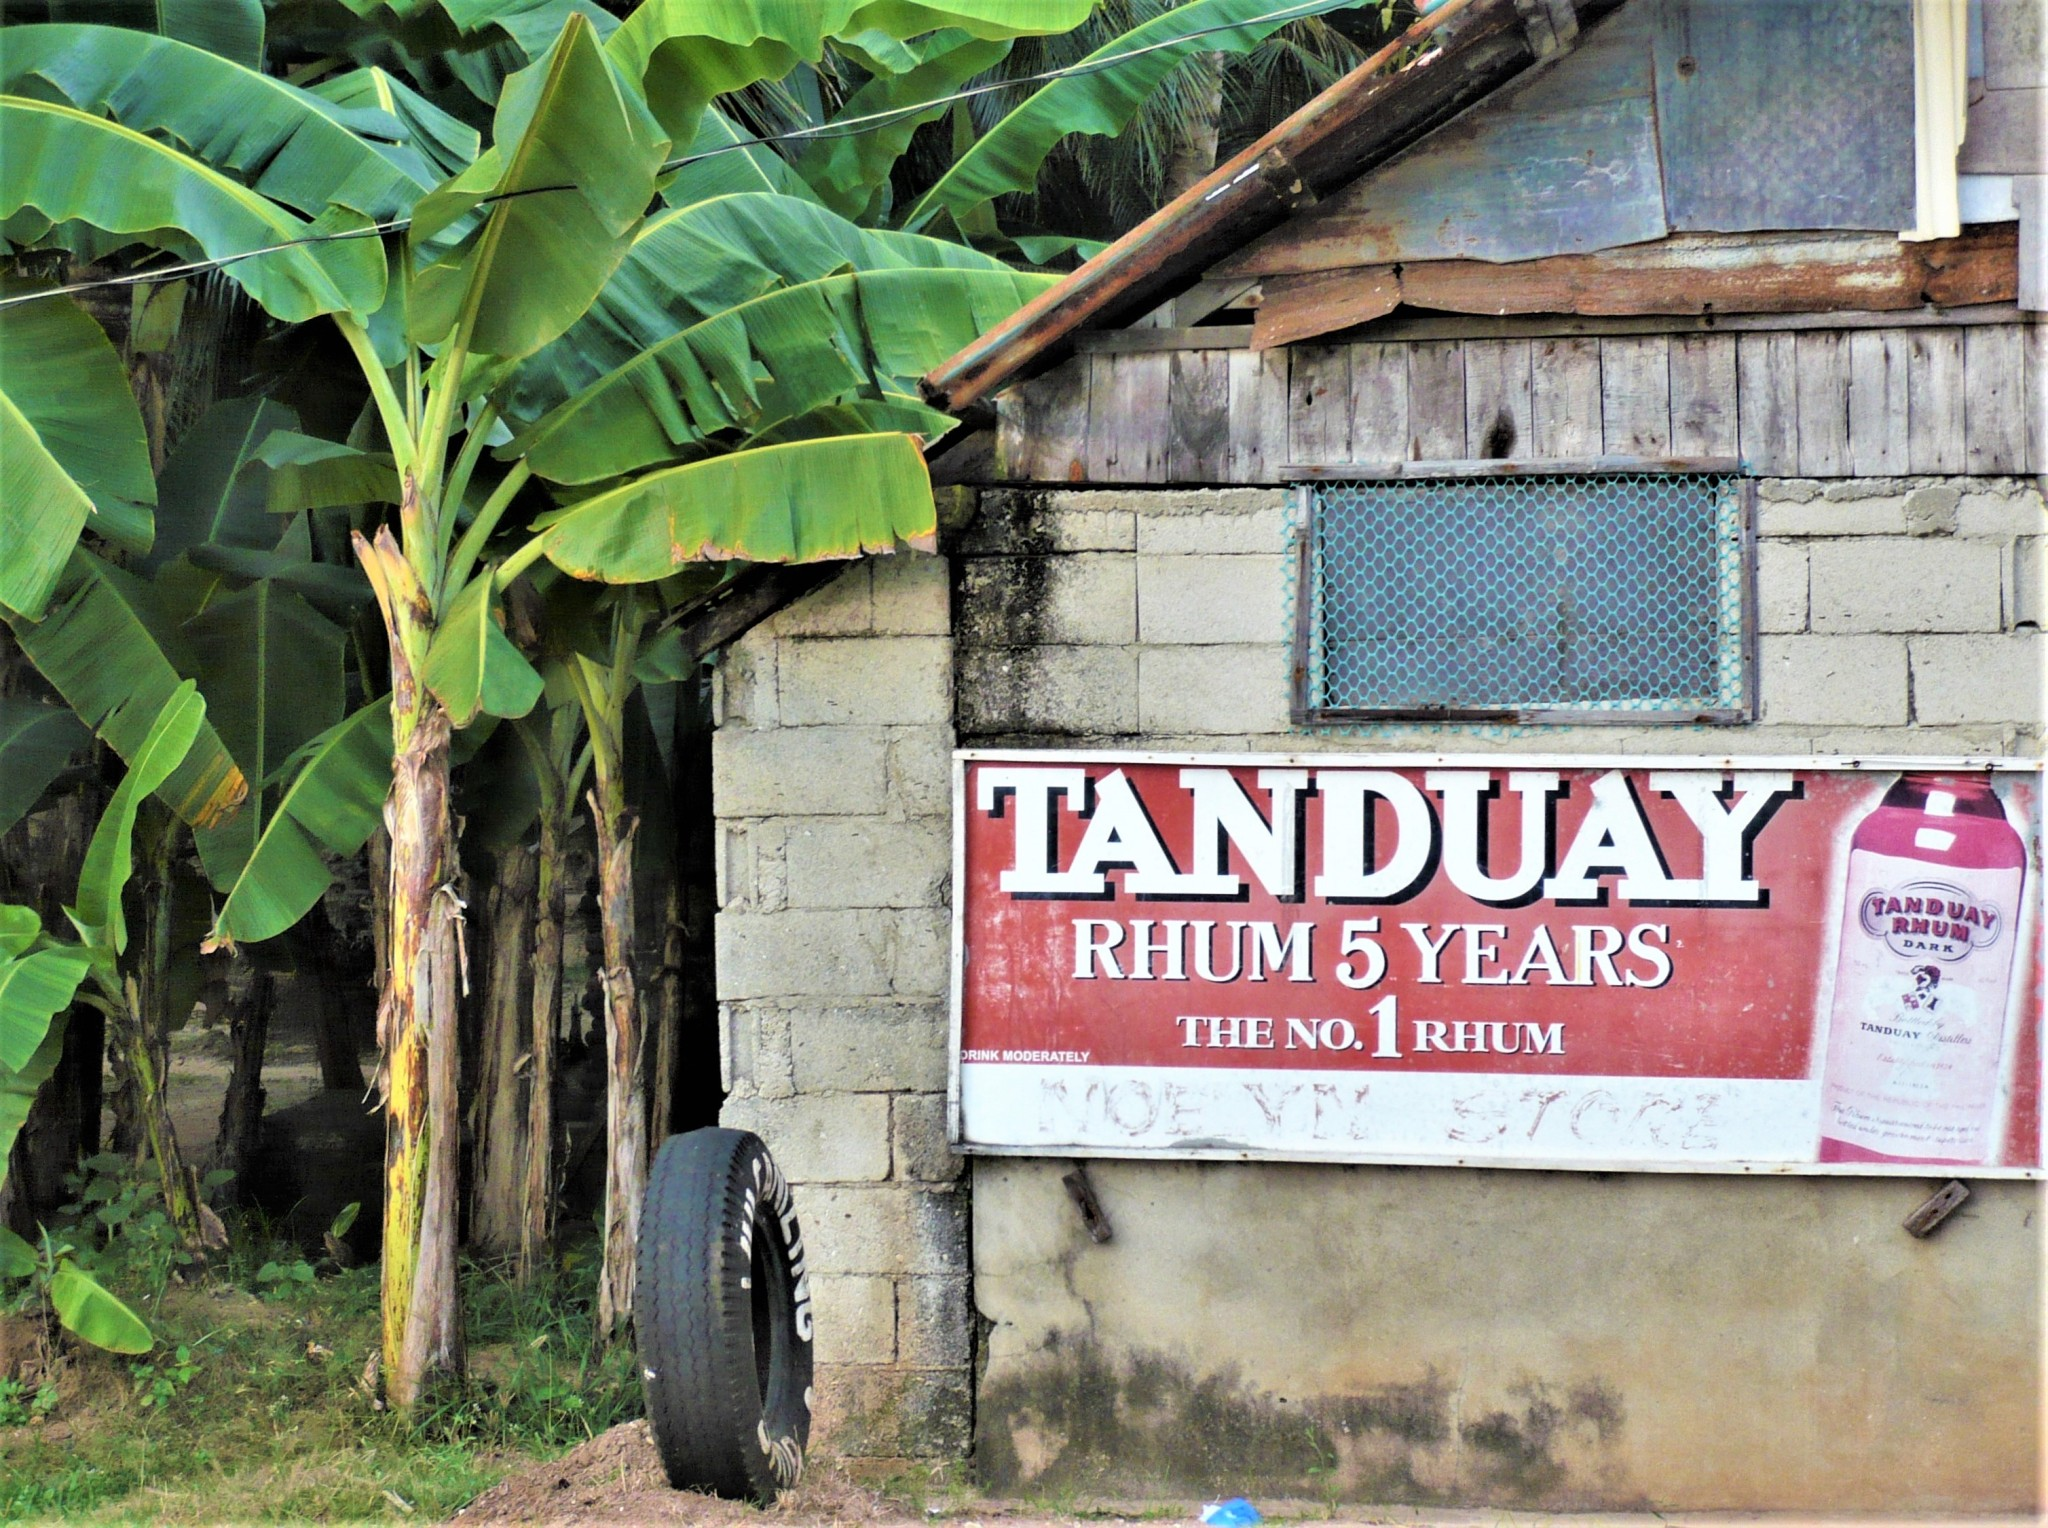 A rustic building featuring a red advertising hoarding situated next to a grove of tropical trees in the Philippines.